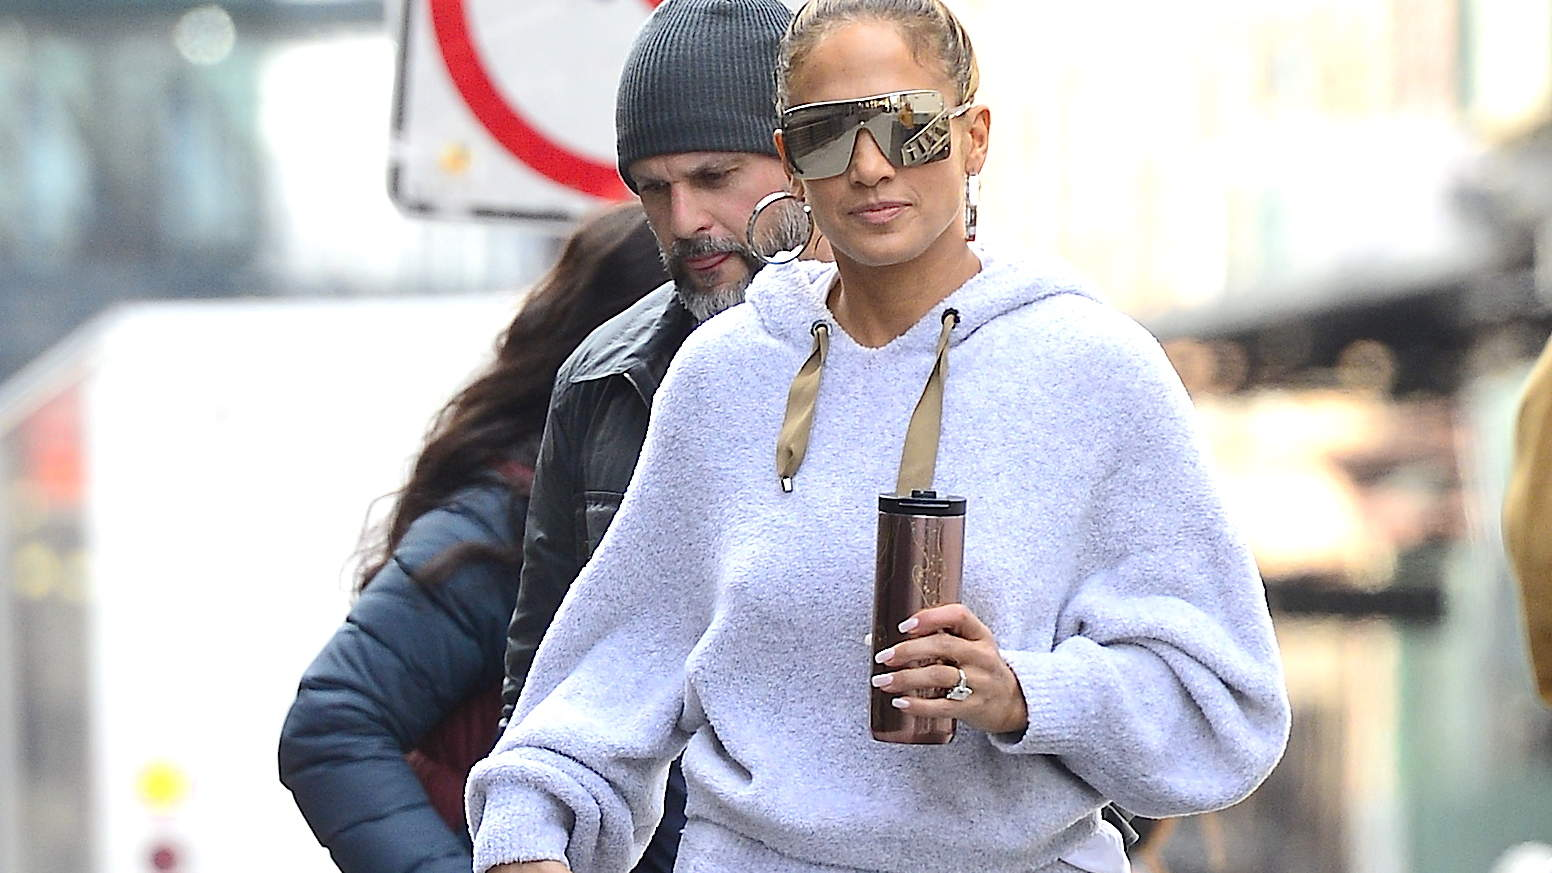 Jennifer Lopez Just Wore the Most Comfortable Gray Sweatsuit on the Planet